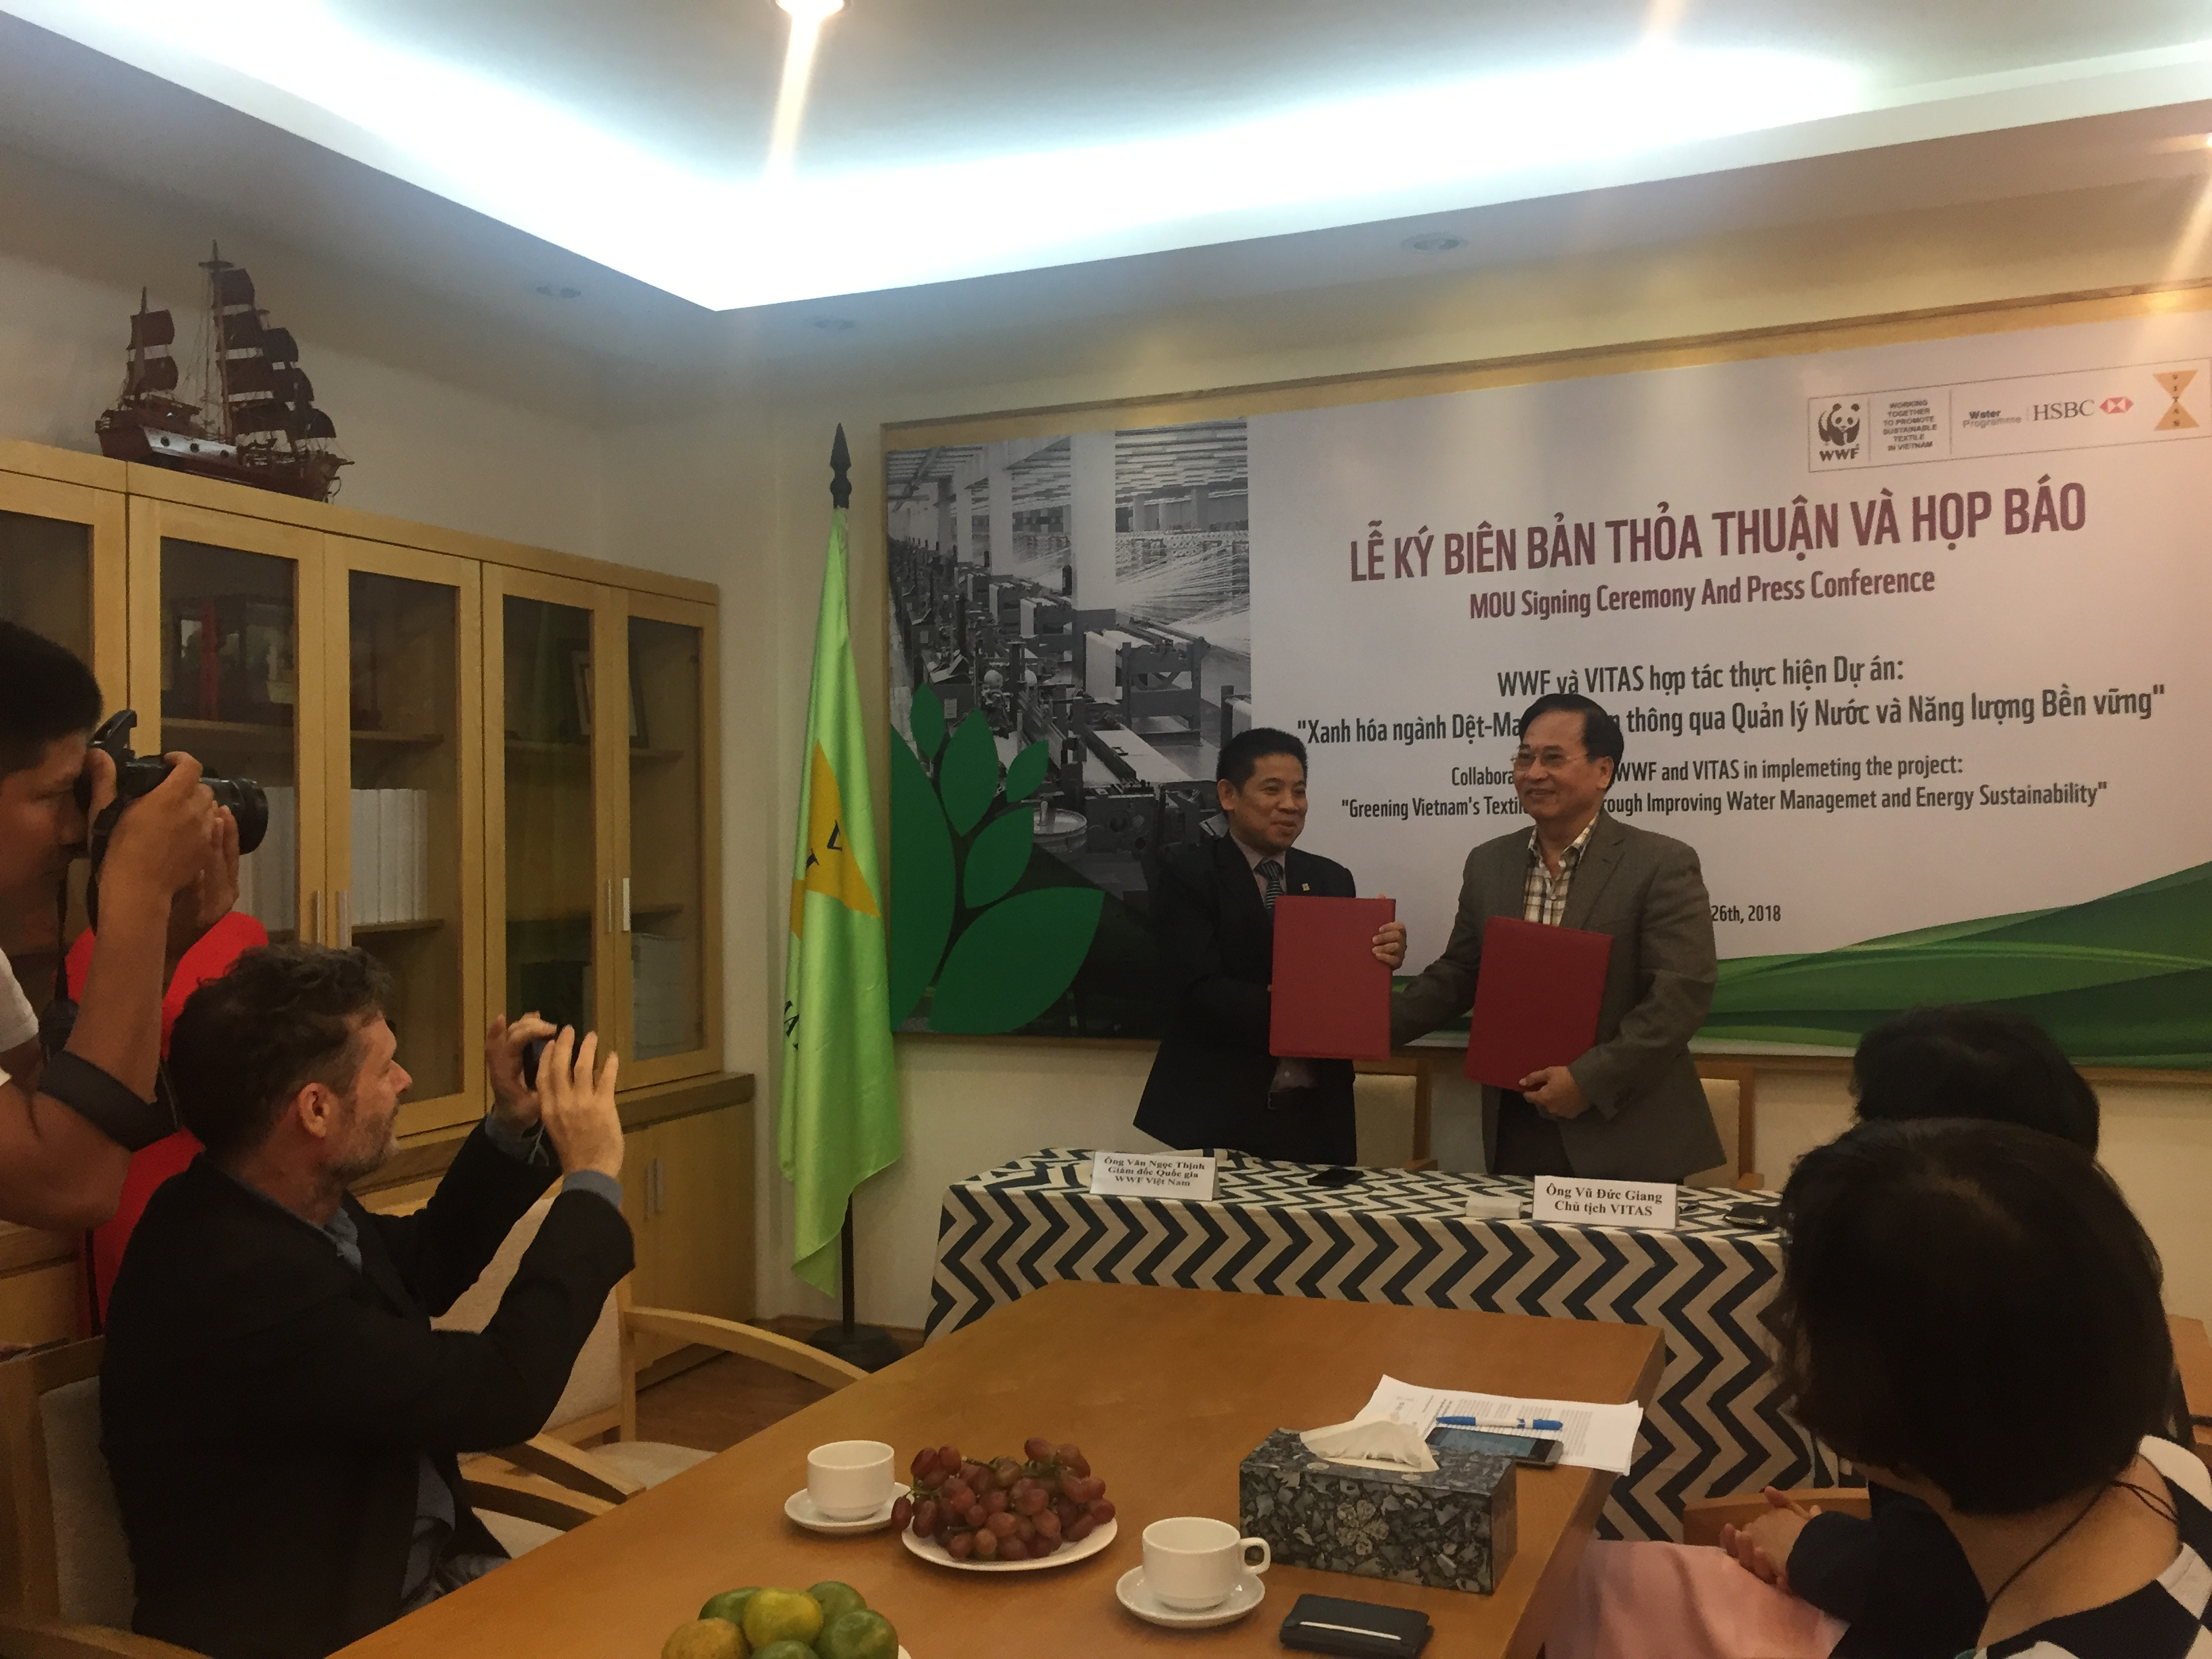 WWF and VITAS aim to green Vietnam's textile and apparel sector